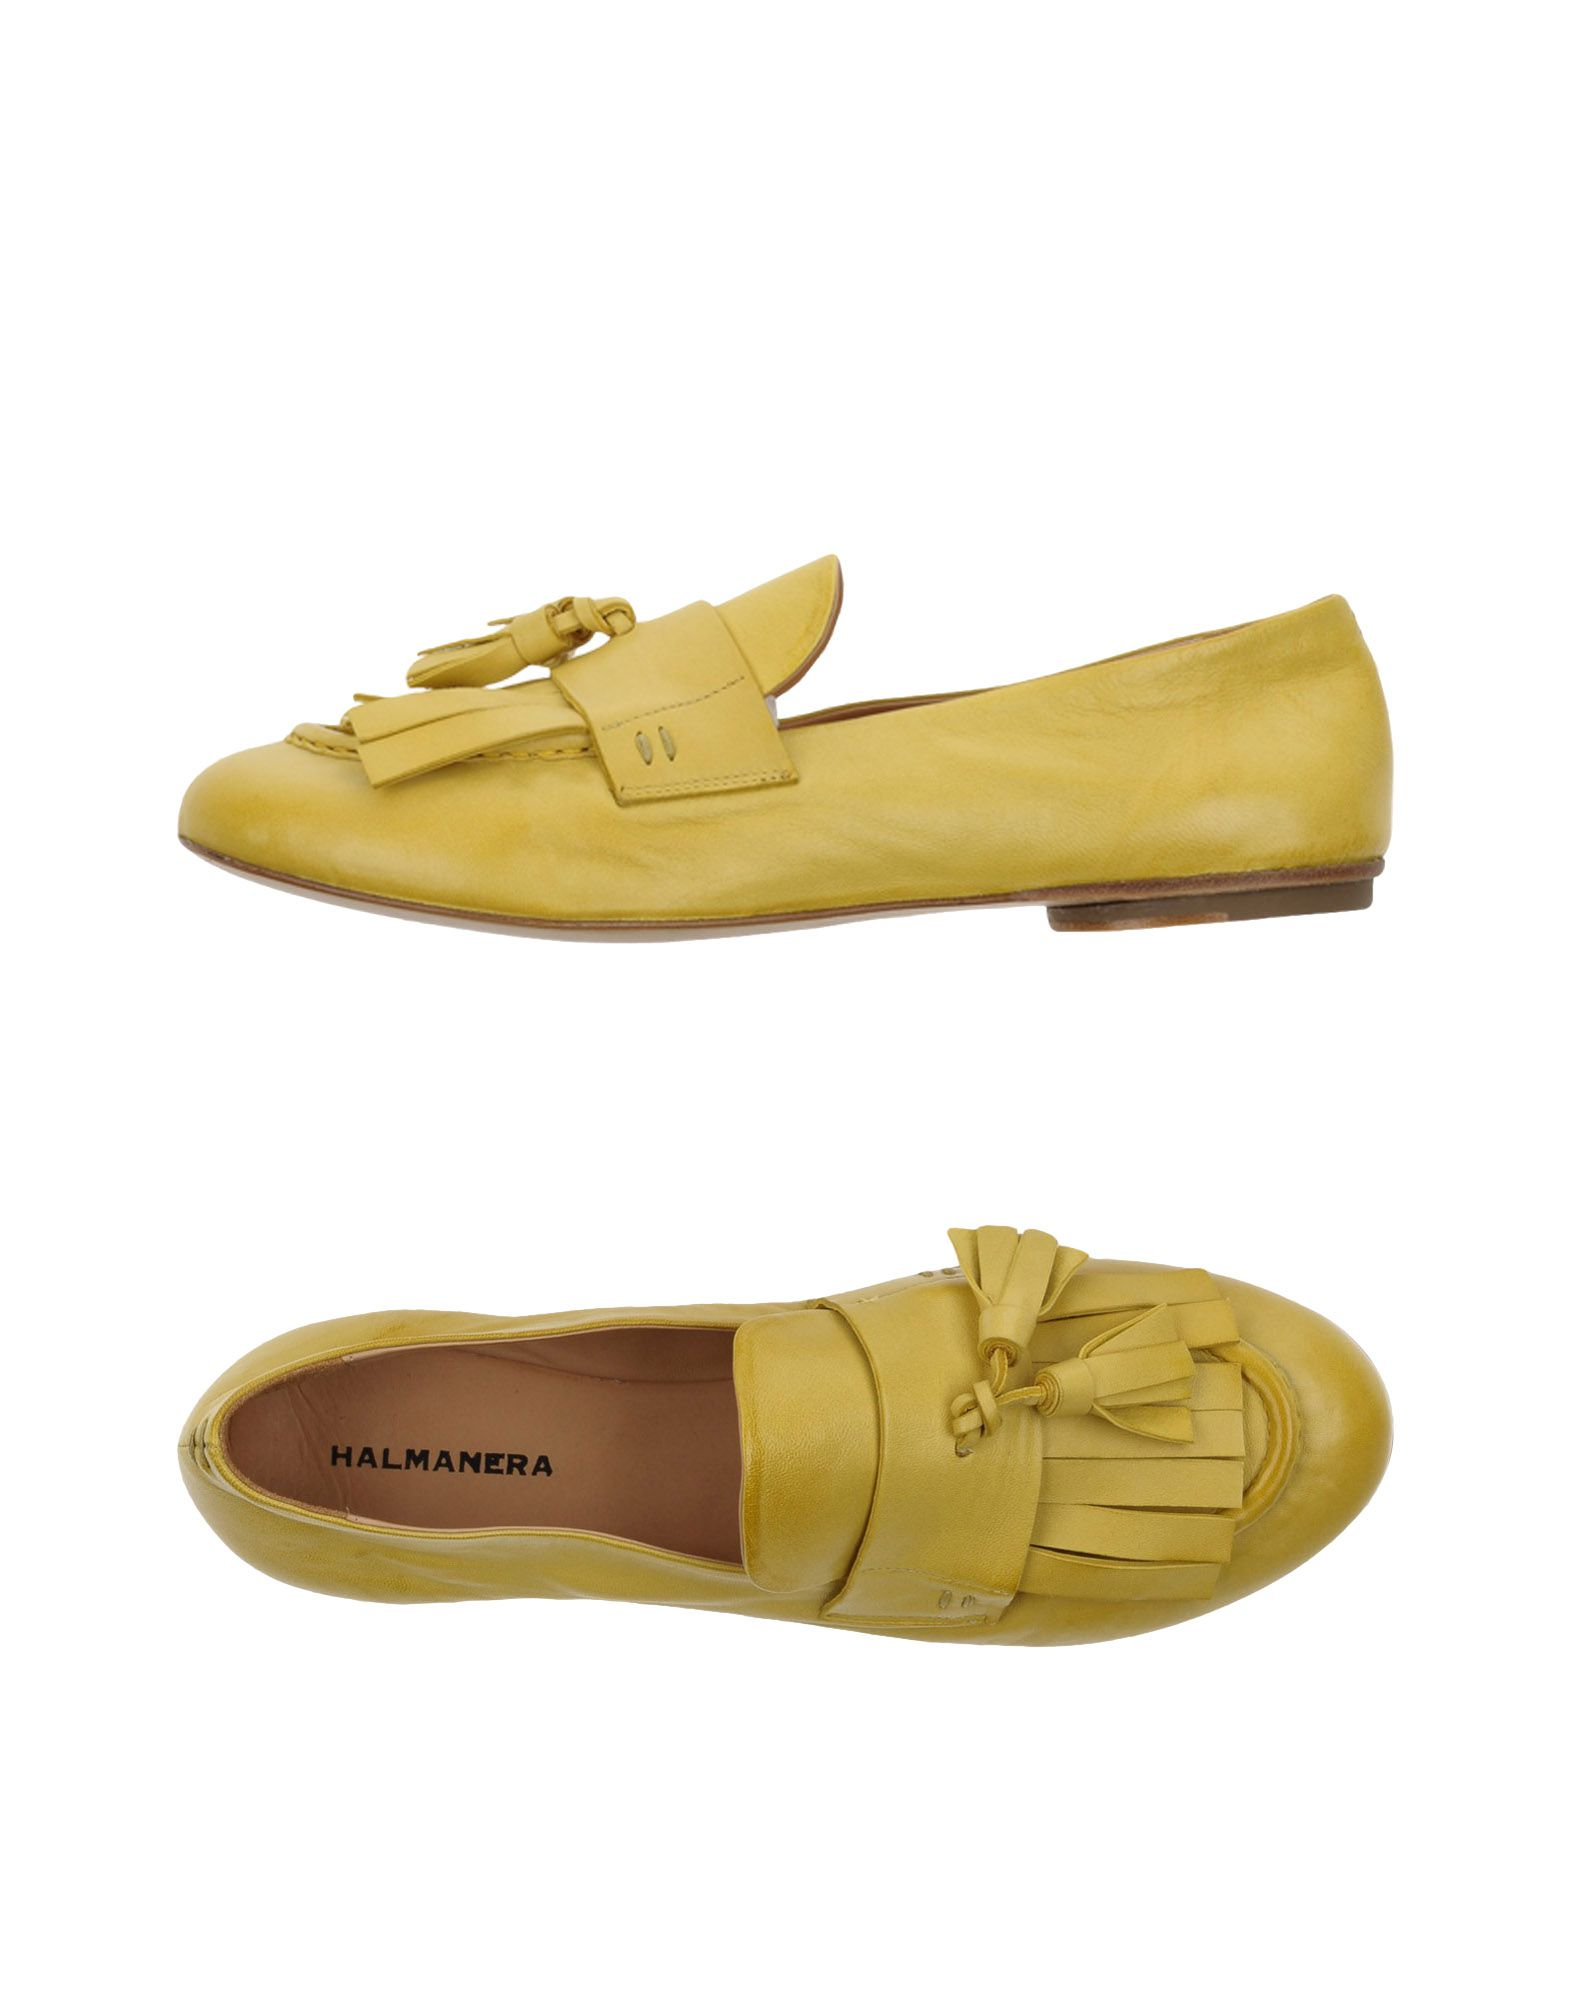 HALMANERA Loafers authentic cheap price buy cheap official site discount outlet locations jfH2weZ